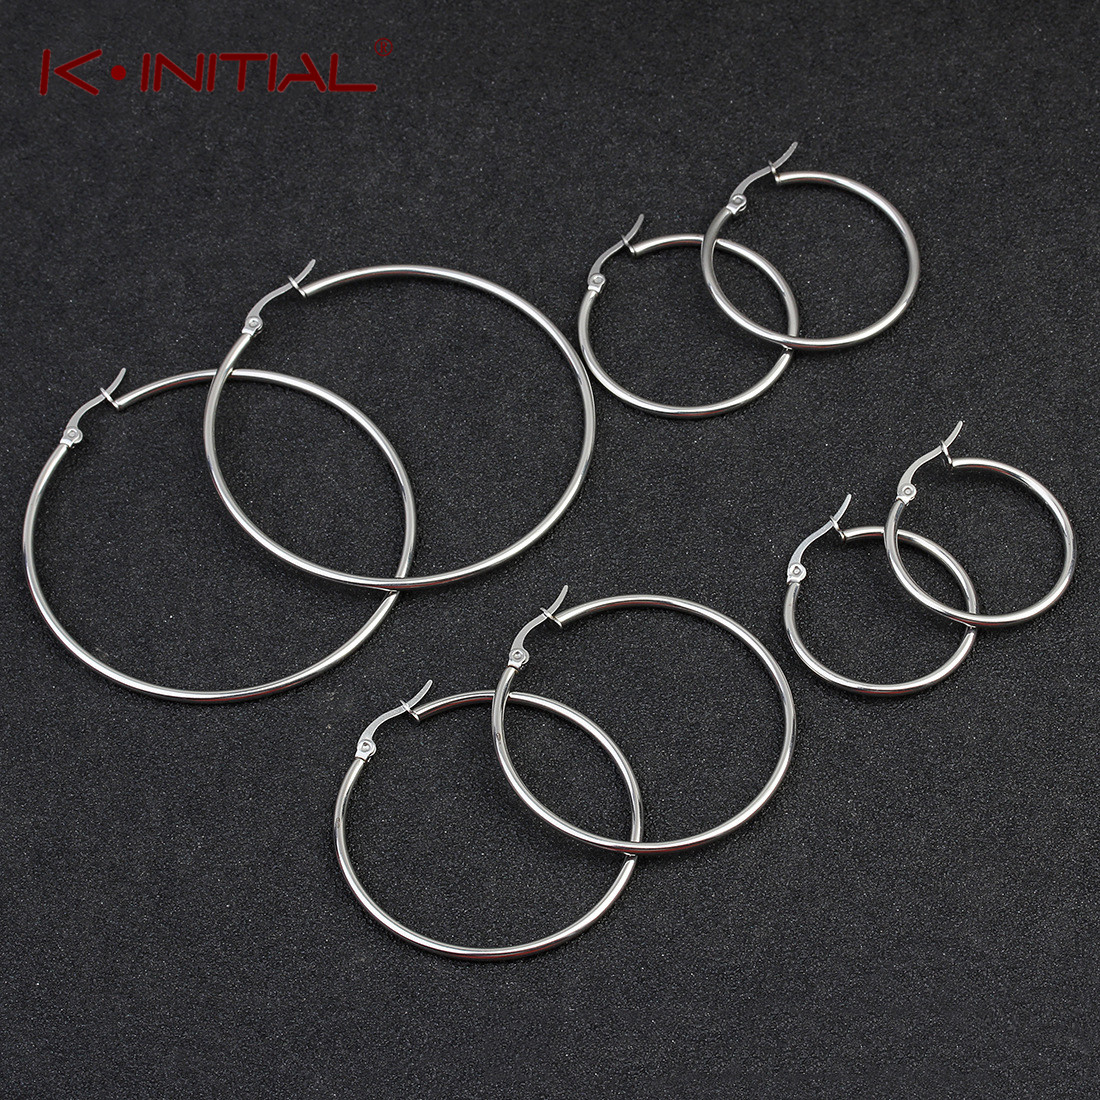 Kinitial New Smooth Circle Hoop Earrings For Women Stainless Steel Geometric Earrings 5 Style Round Earring Statement Jewelry